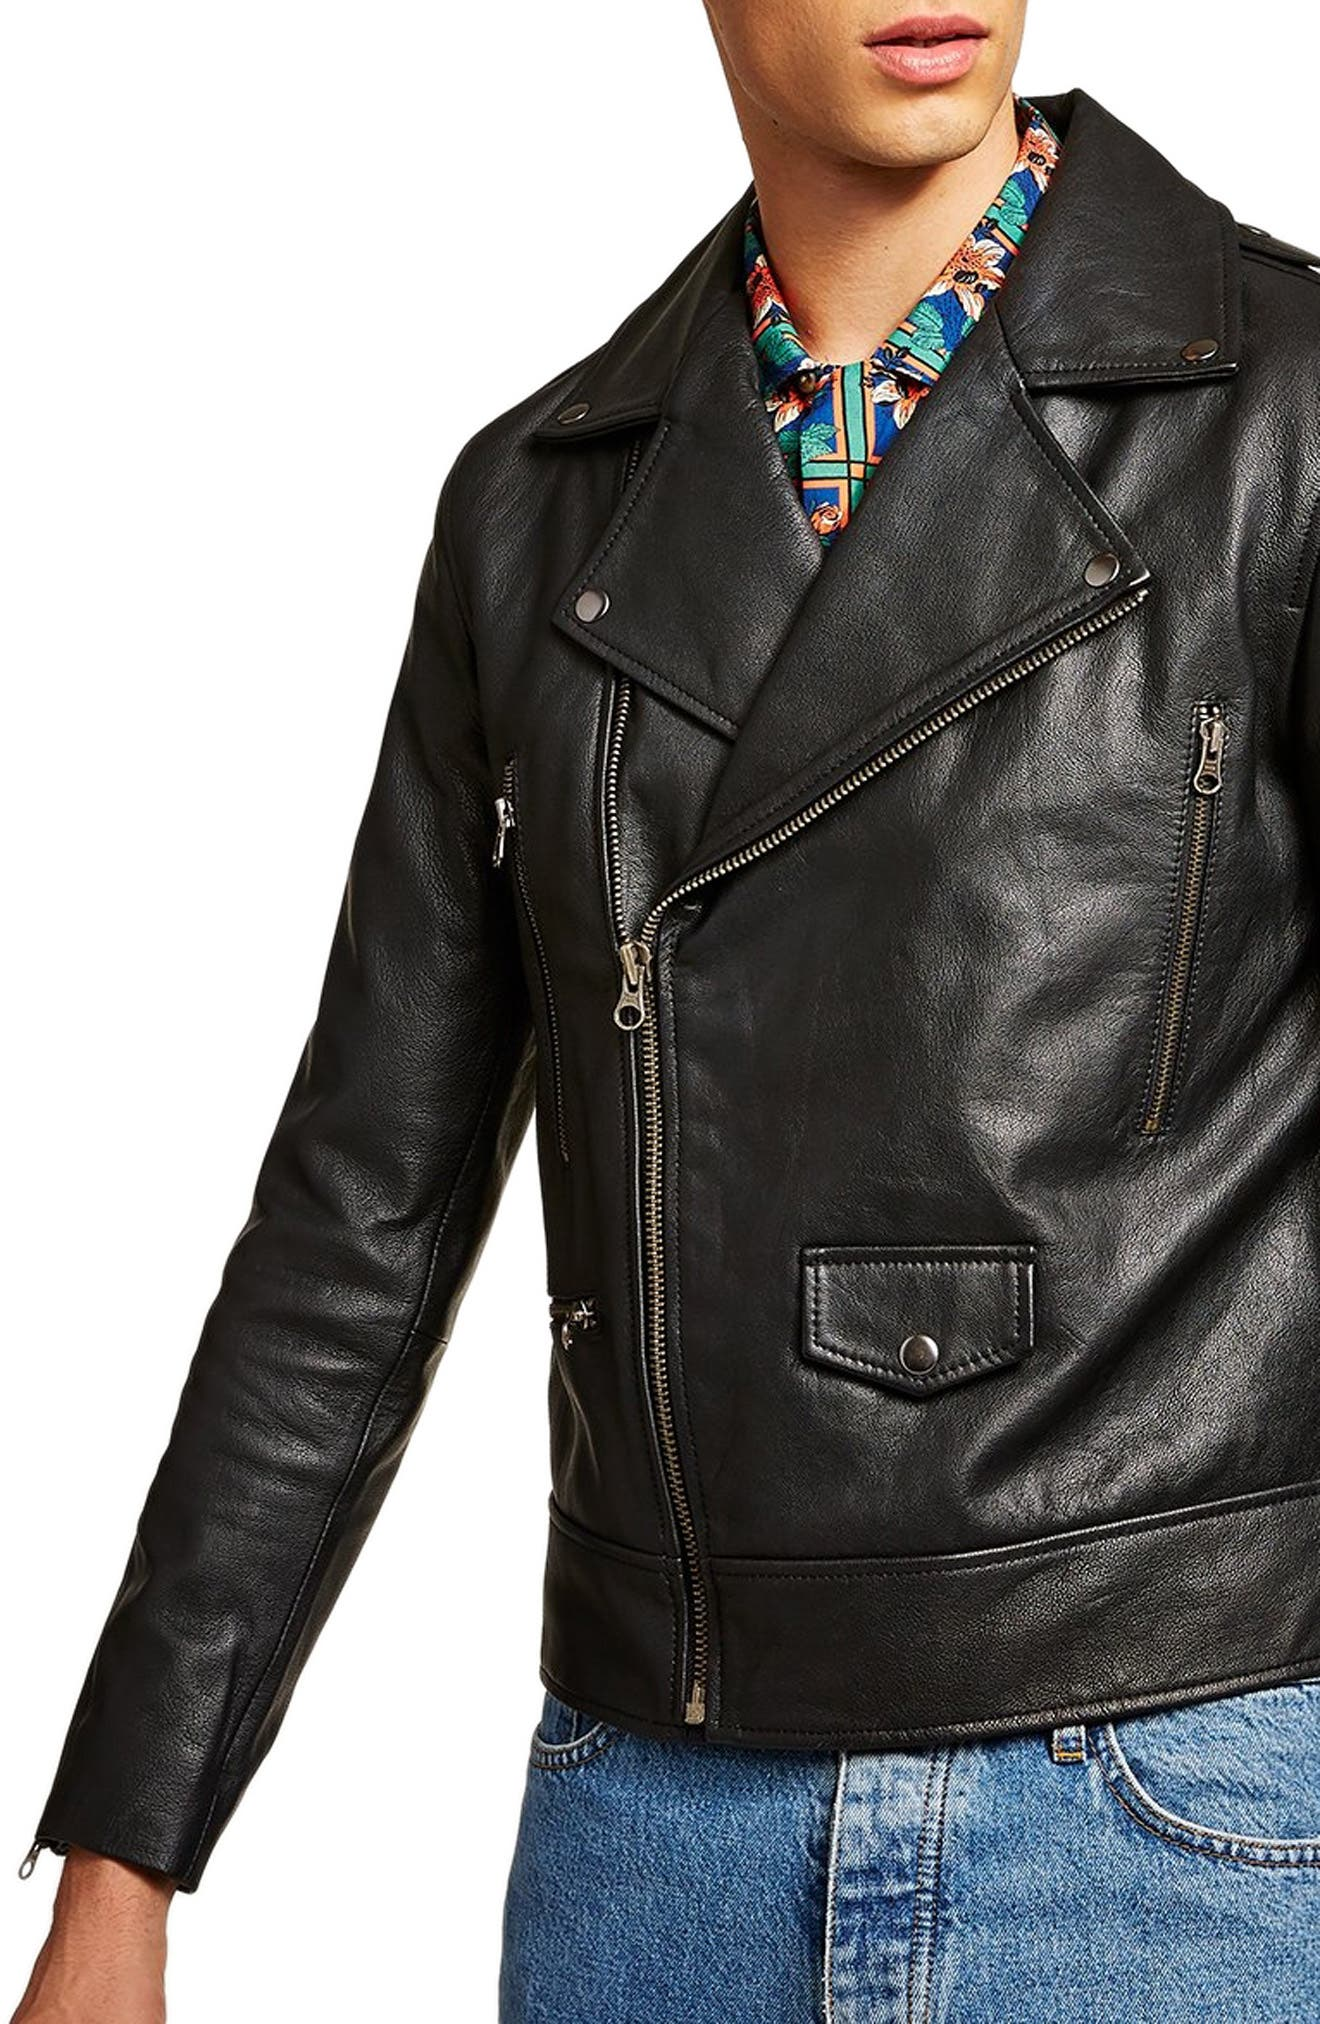 Classic Fit Leather Biker Jacket,                             Main thumbnail 1, color,                             BLACK